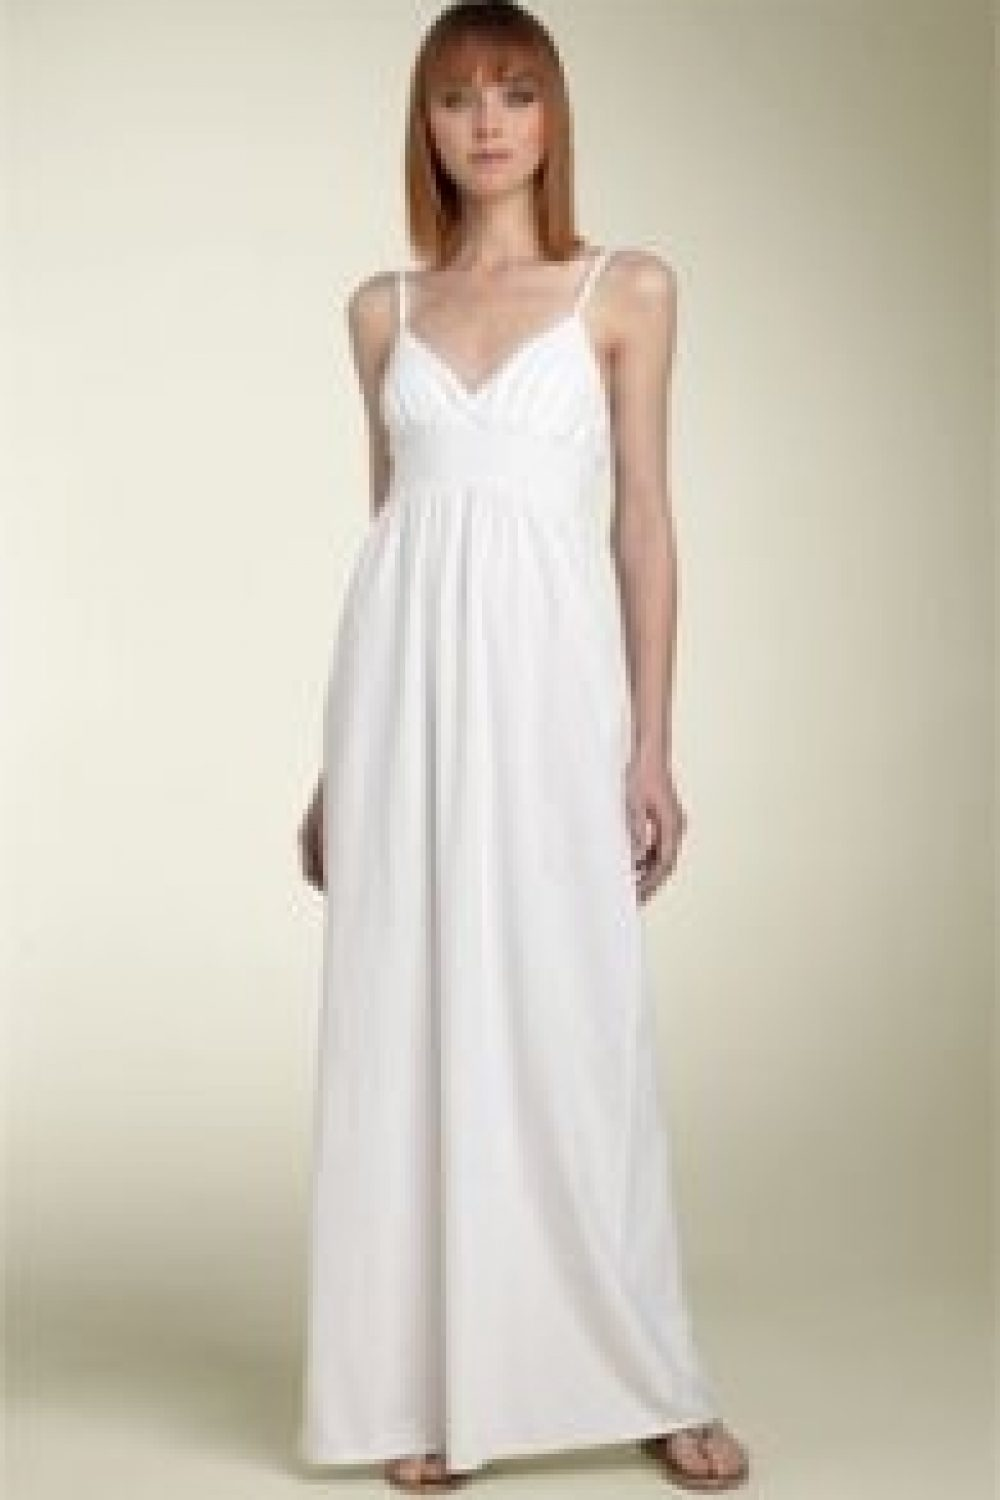 A White Dress Affair